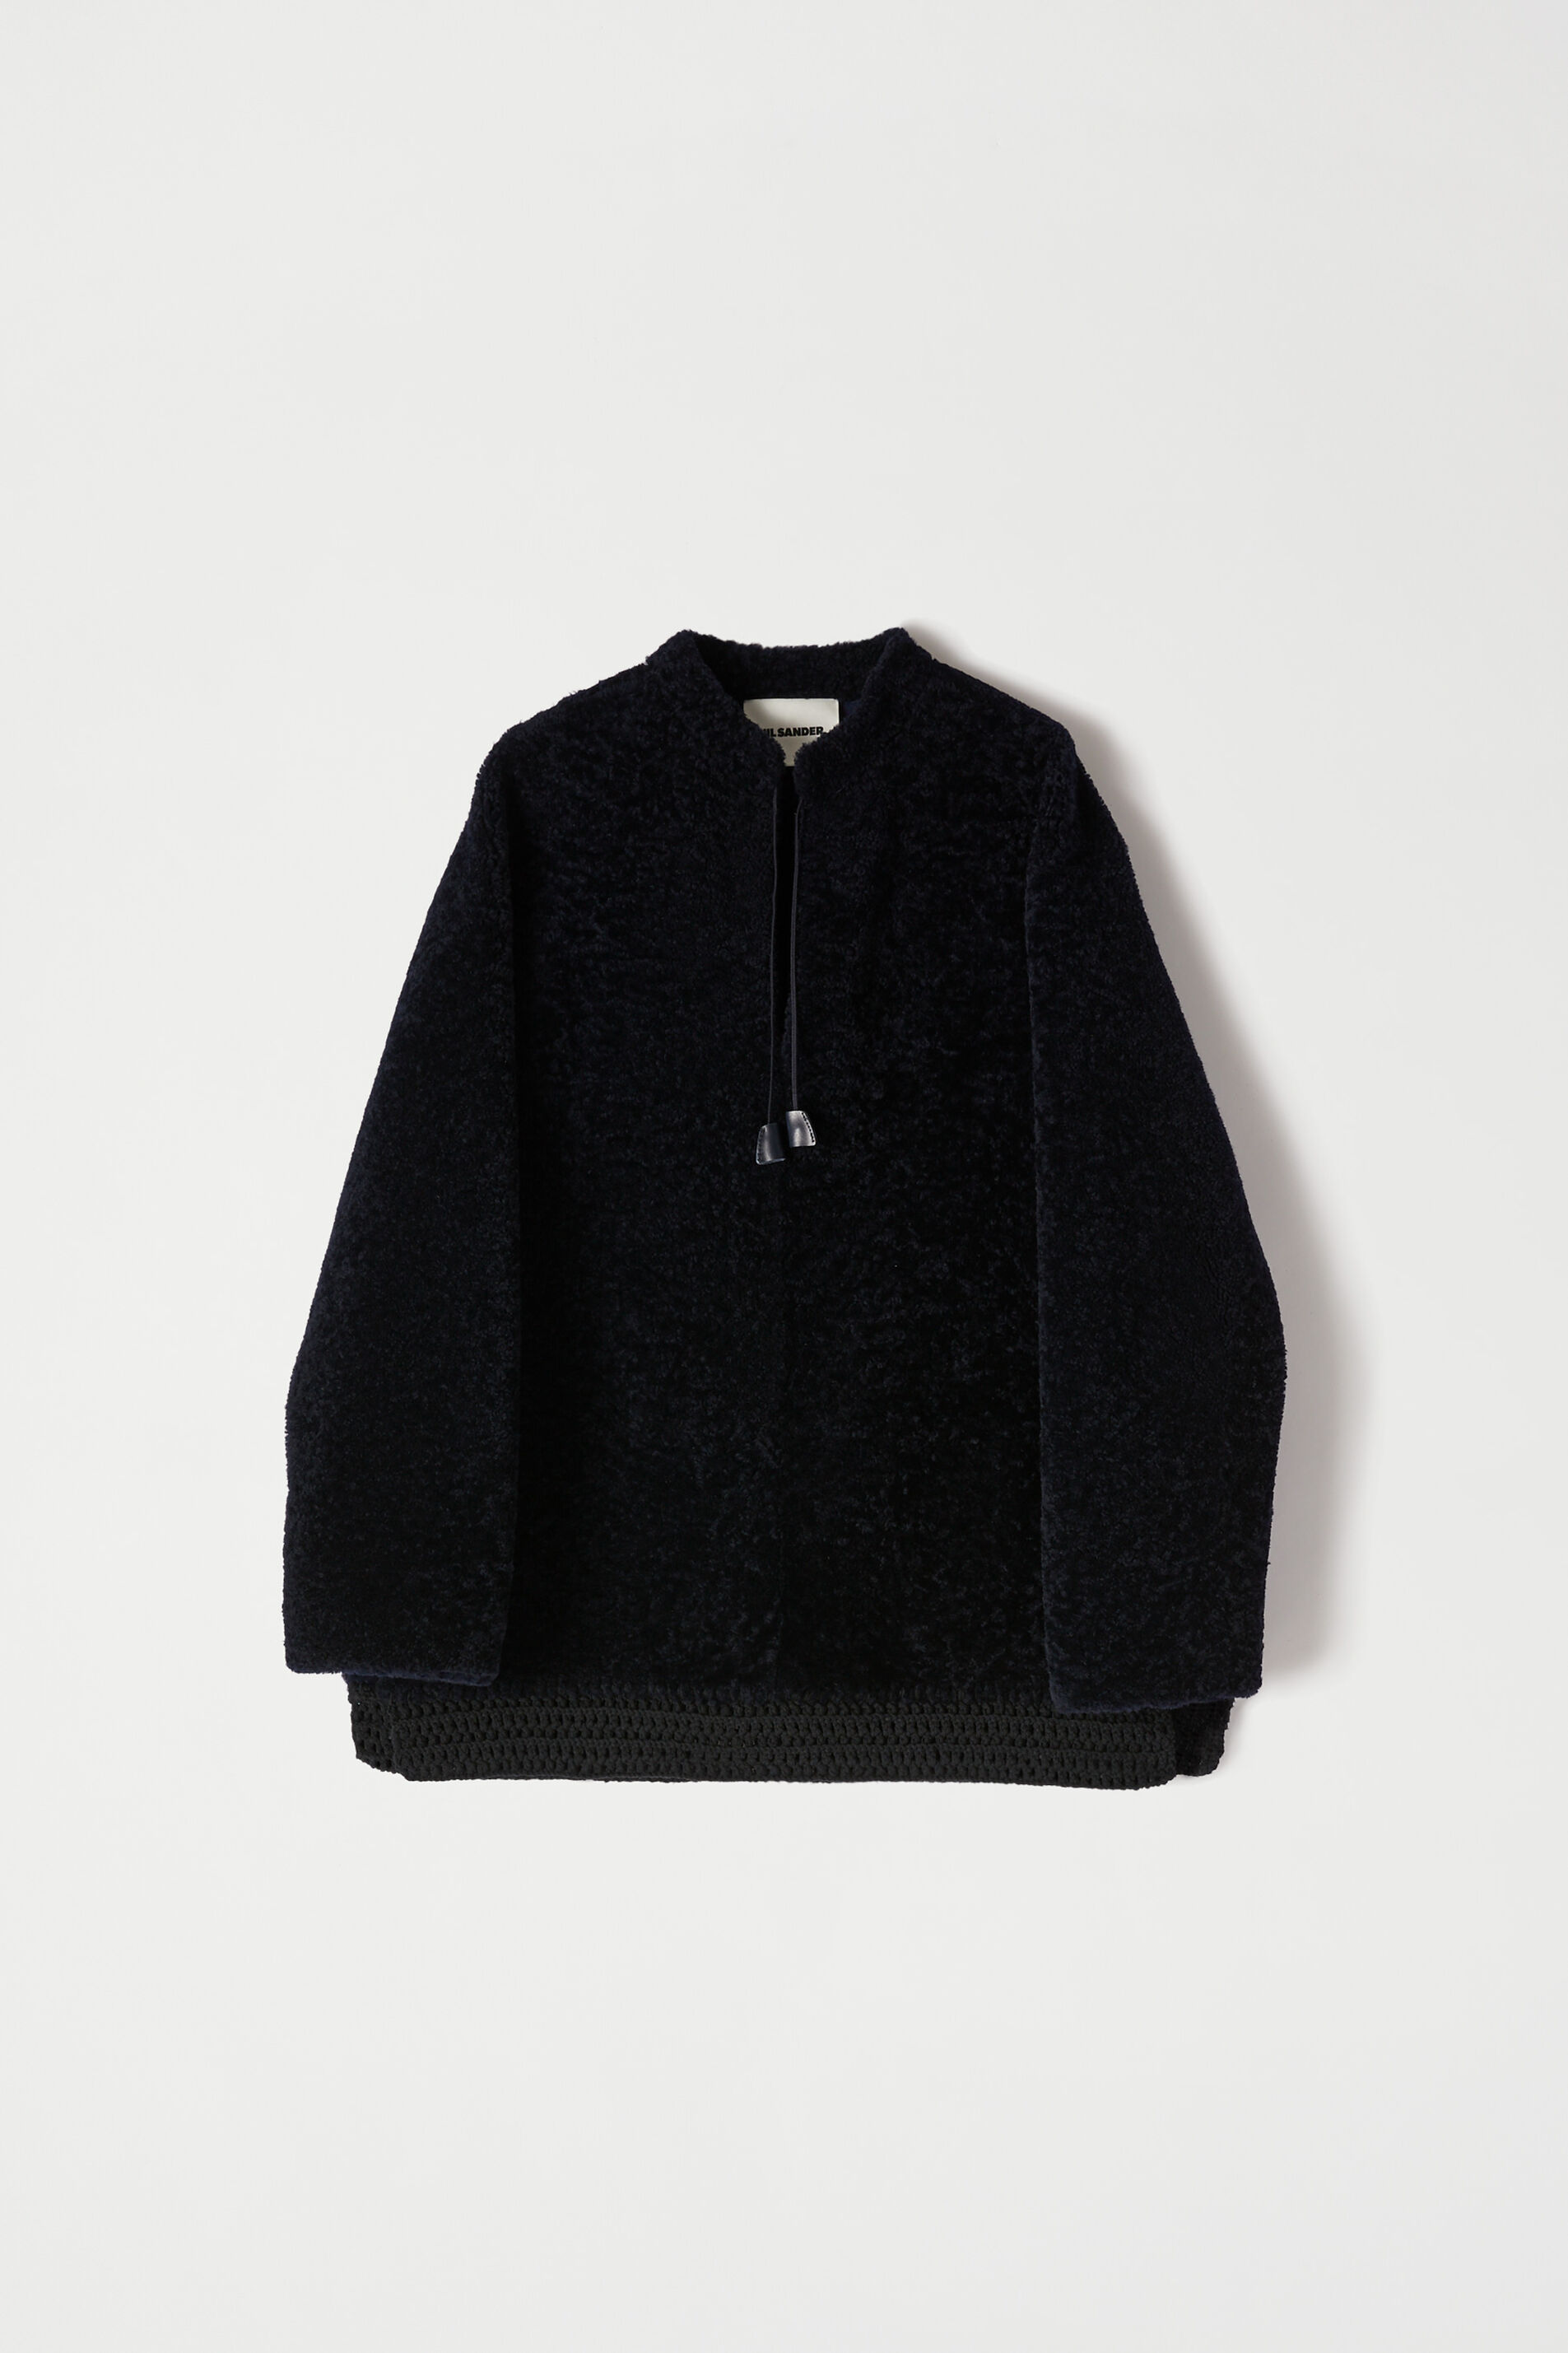 Shearling Pullover, dark blue, large